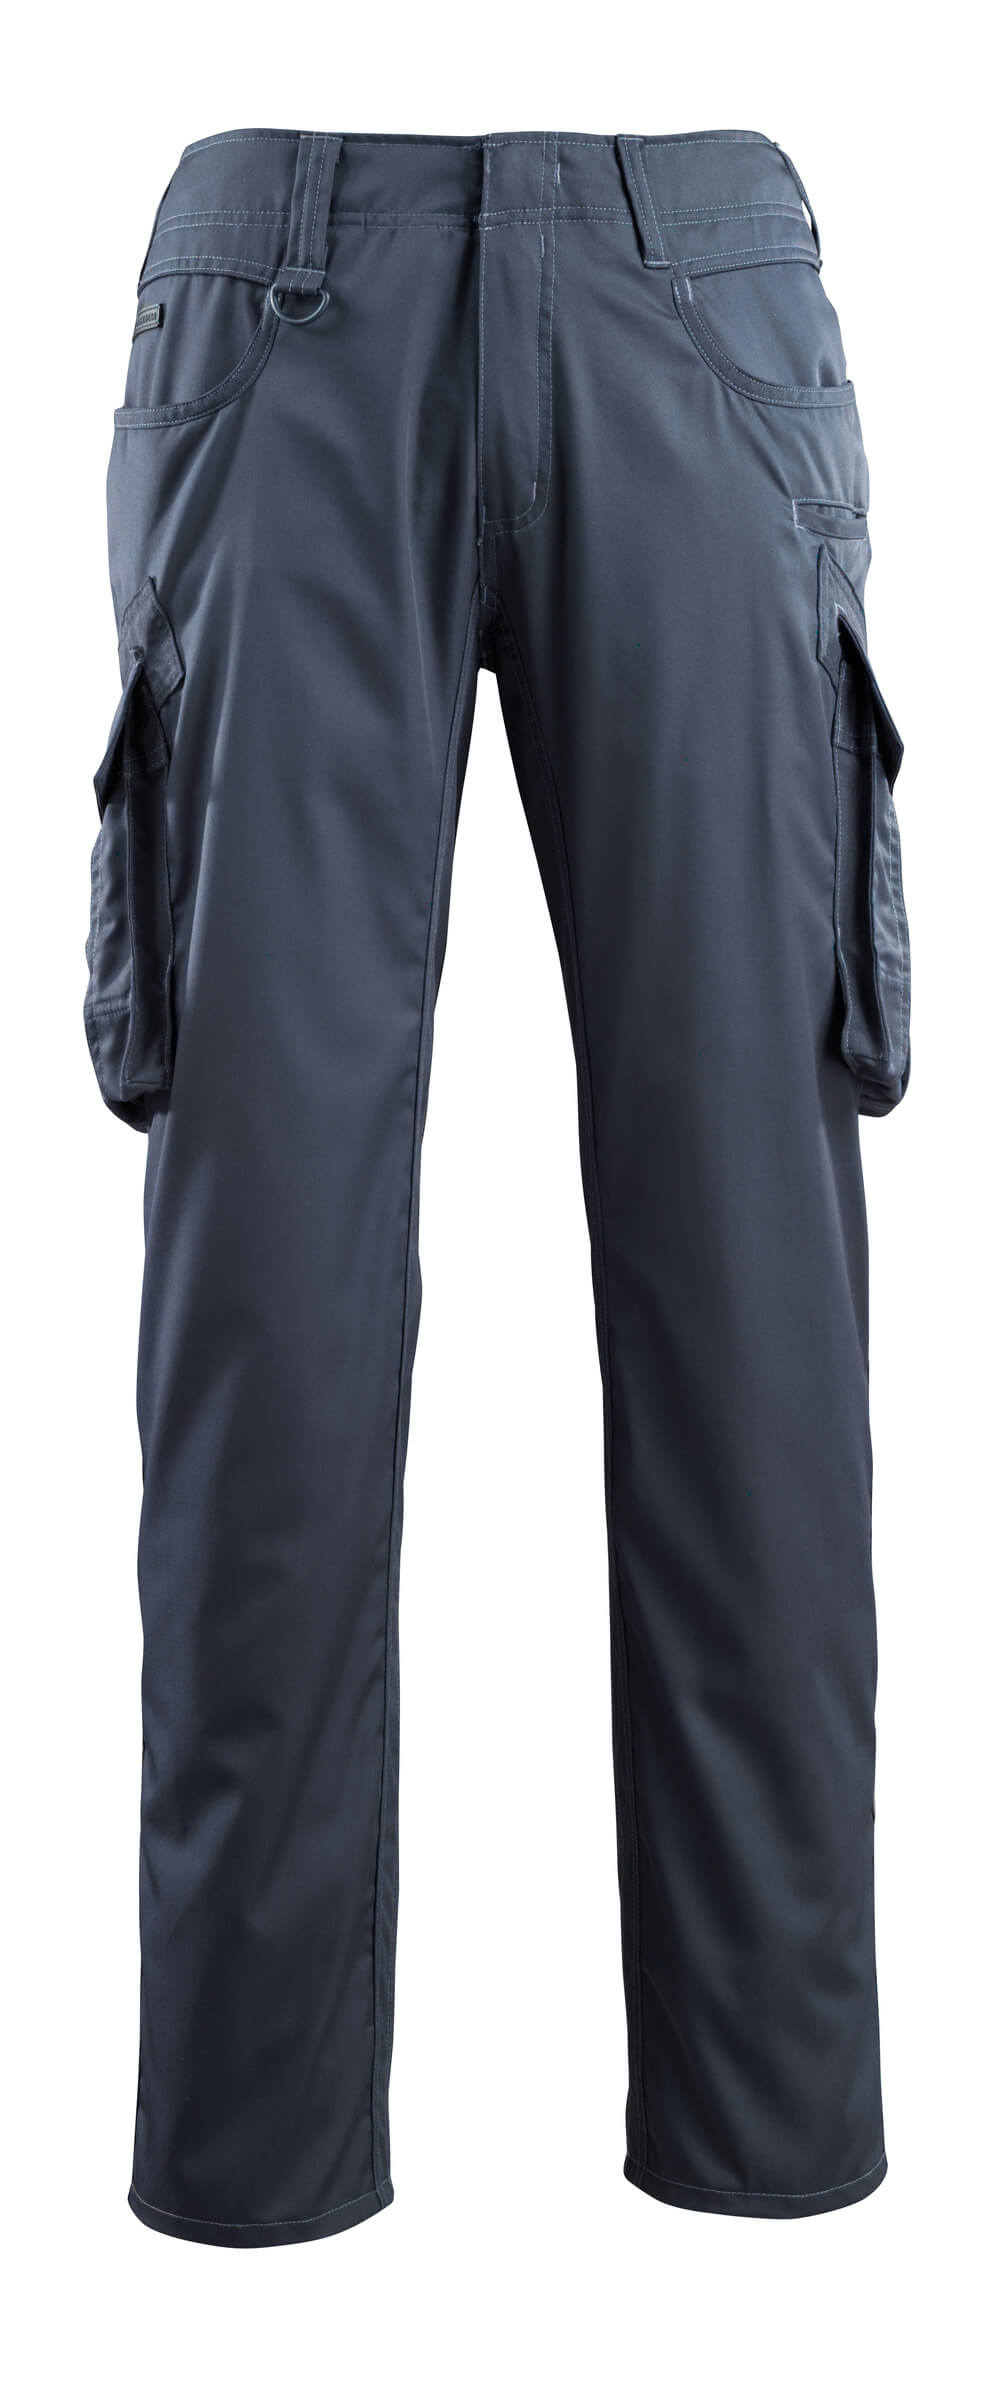 16179-230-010 Trousers with thigh pockets - dark navy